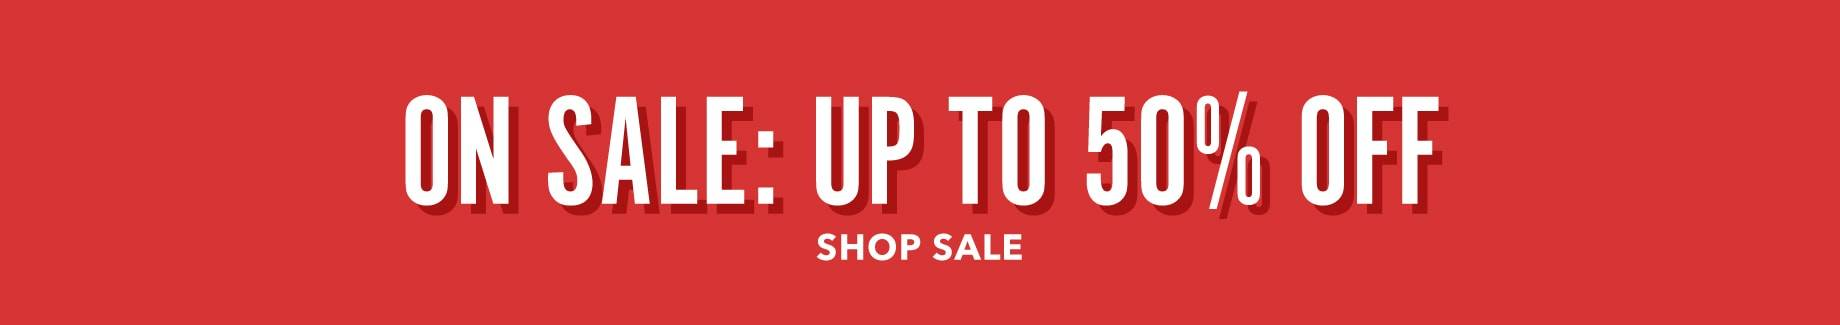 On Sale: Up To 50% Off. Shop Salepac